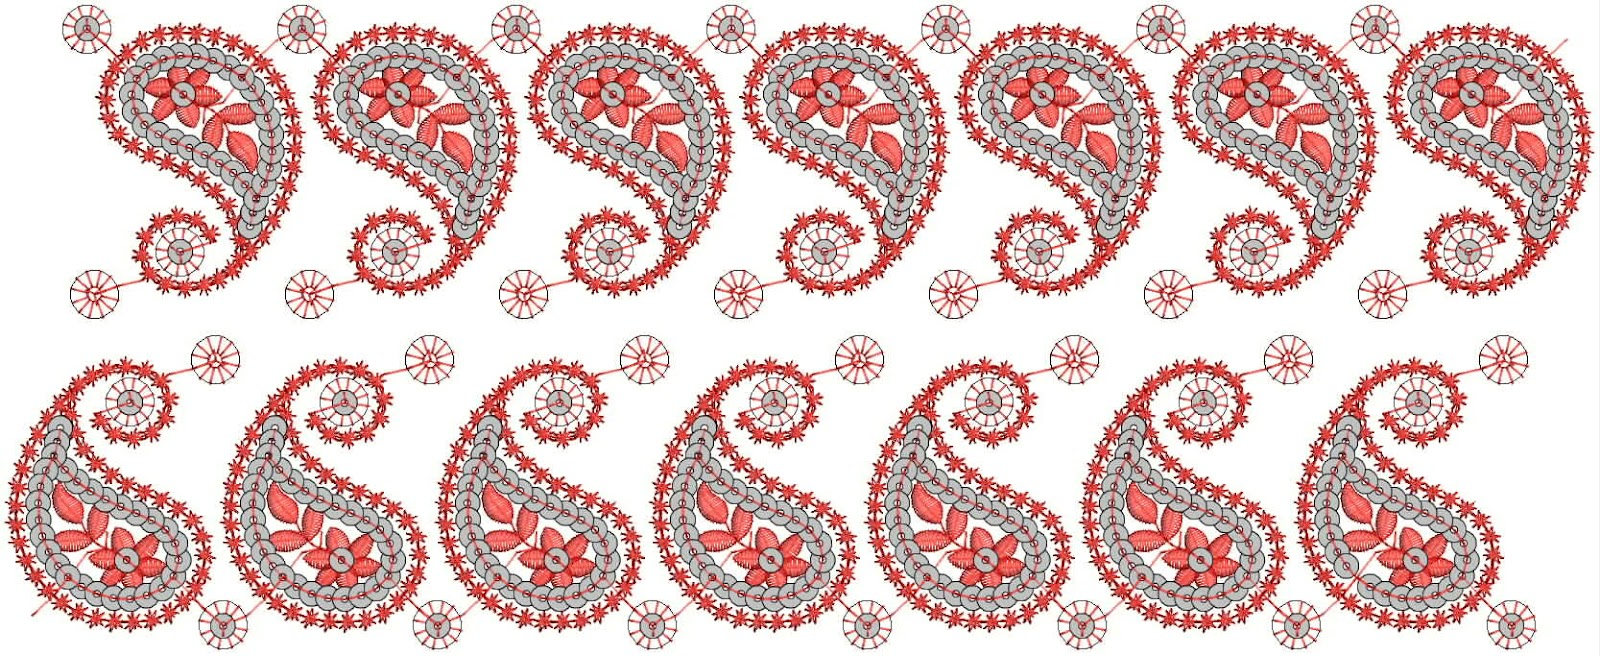 Embdesigntube Border Embroidery Designs For Chiffon Silk Clothing